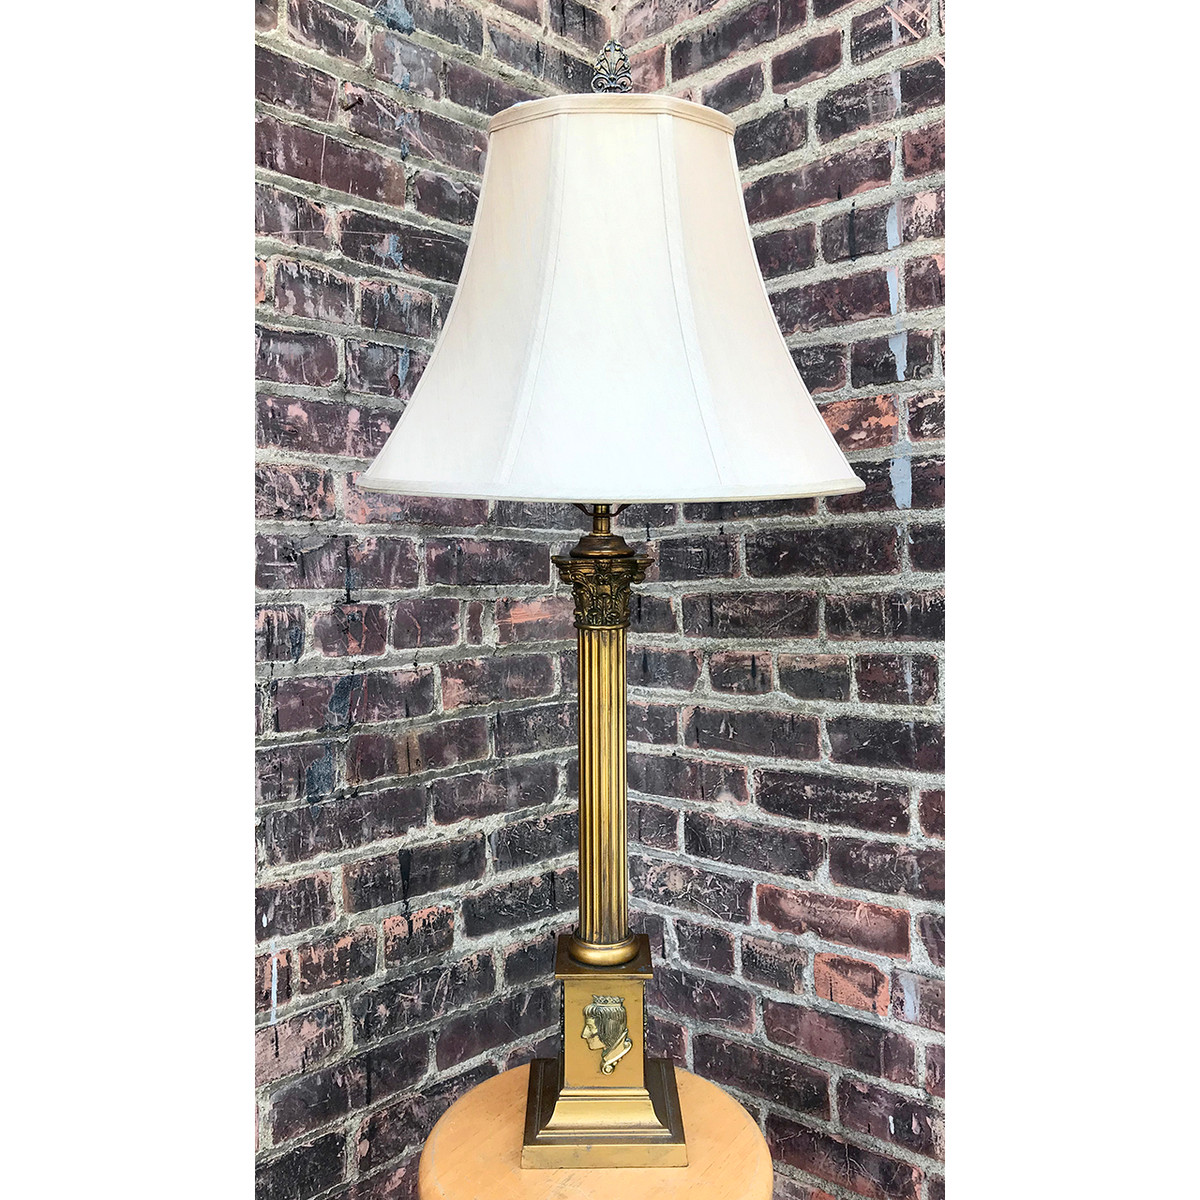 L15178 - Antique Colonial Revival Table Lamp